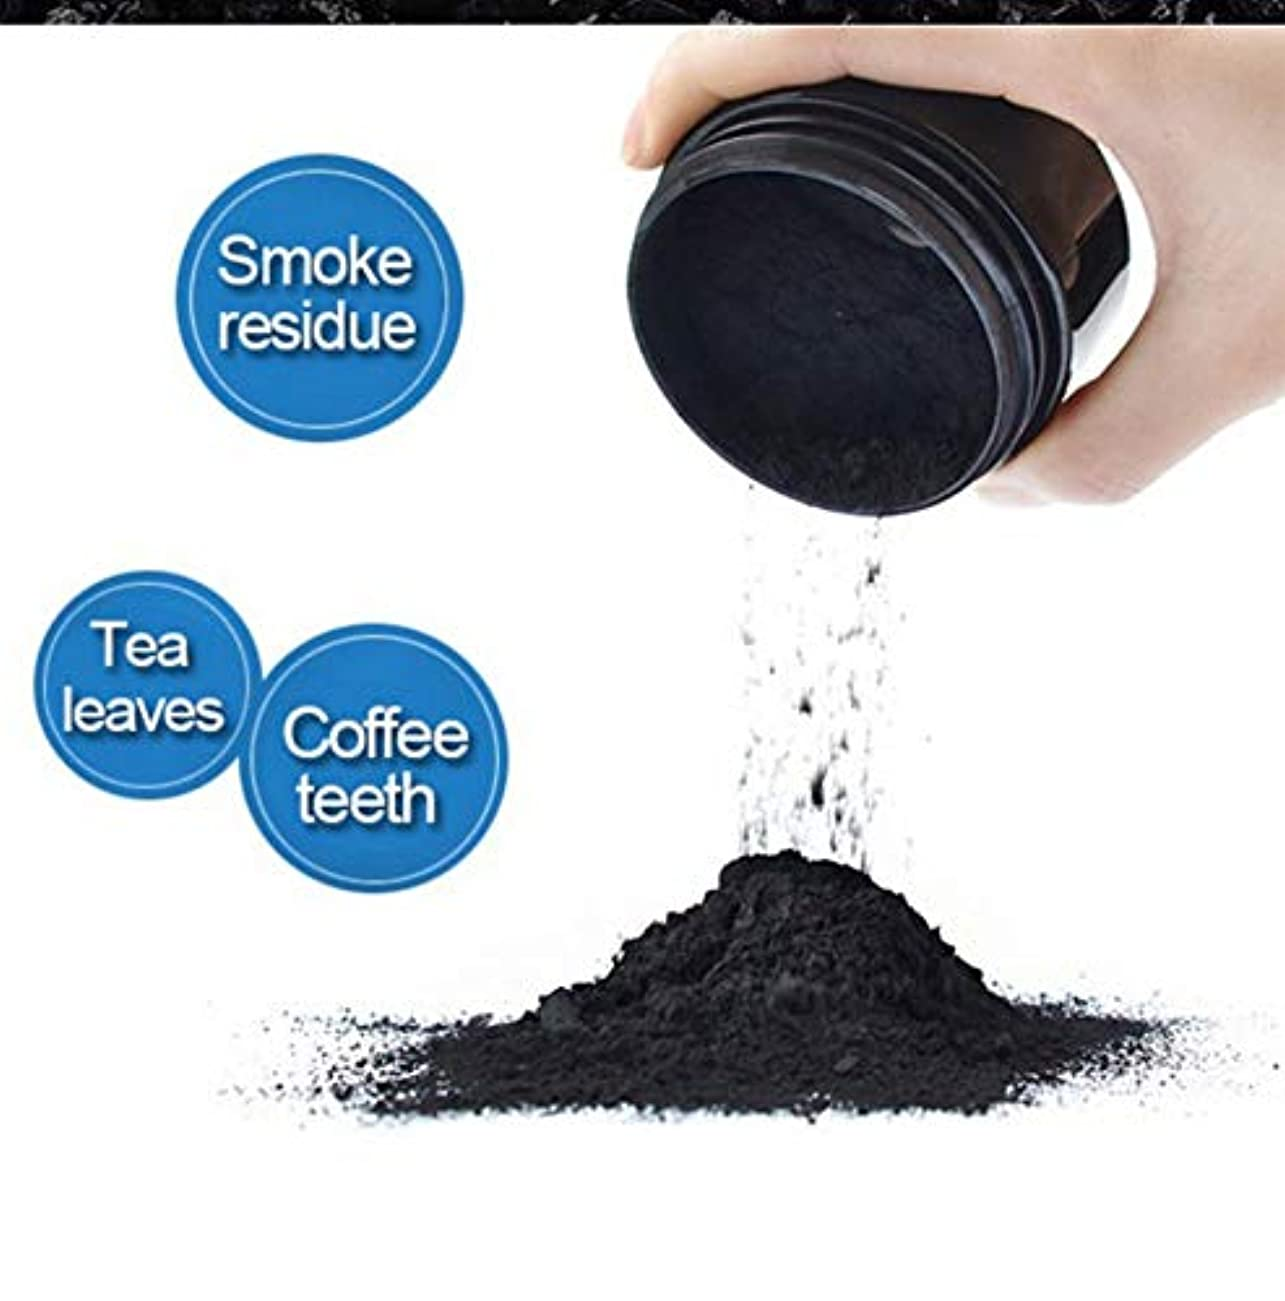 接触ジョージエリオットアルバムDaily Use Teeth Whitening Scaling Powder Oral Hygiene Cleaning Packing Premium Activated Bamboo Charcoal Powder...